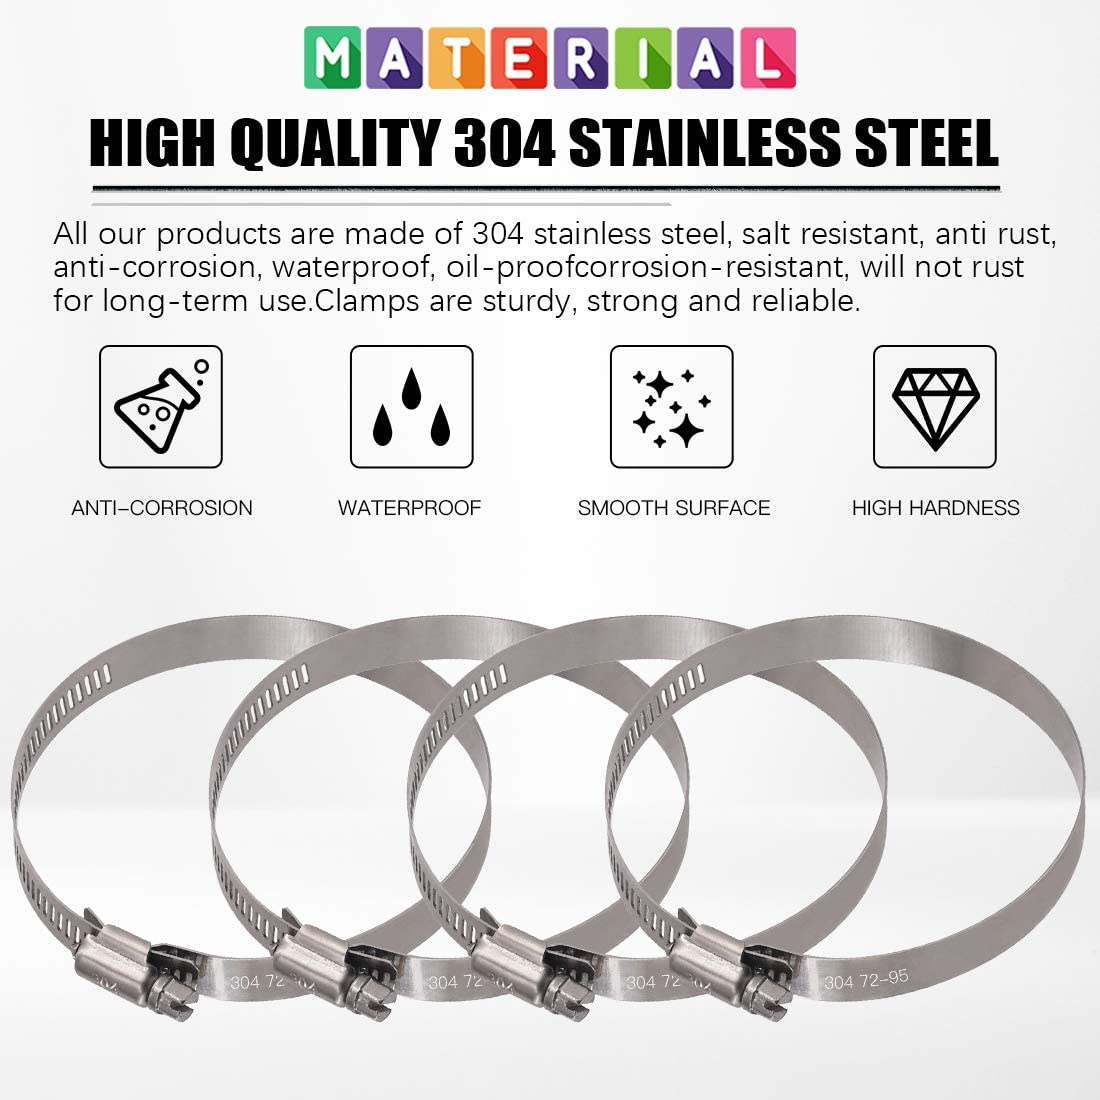 118-140mm Glarks 15Pcs 118-140mm//4.6-5.5inch Range 304 Stainless Steel Adjustable Worm Gear Hose Clamps for Fuel Line Clamp for Water Pipe Automotive and Mechanical Plumbing